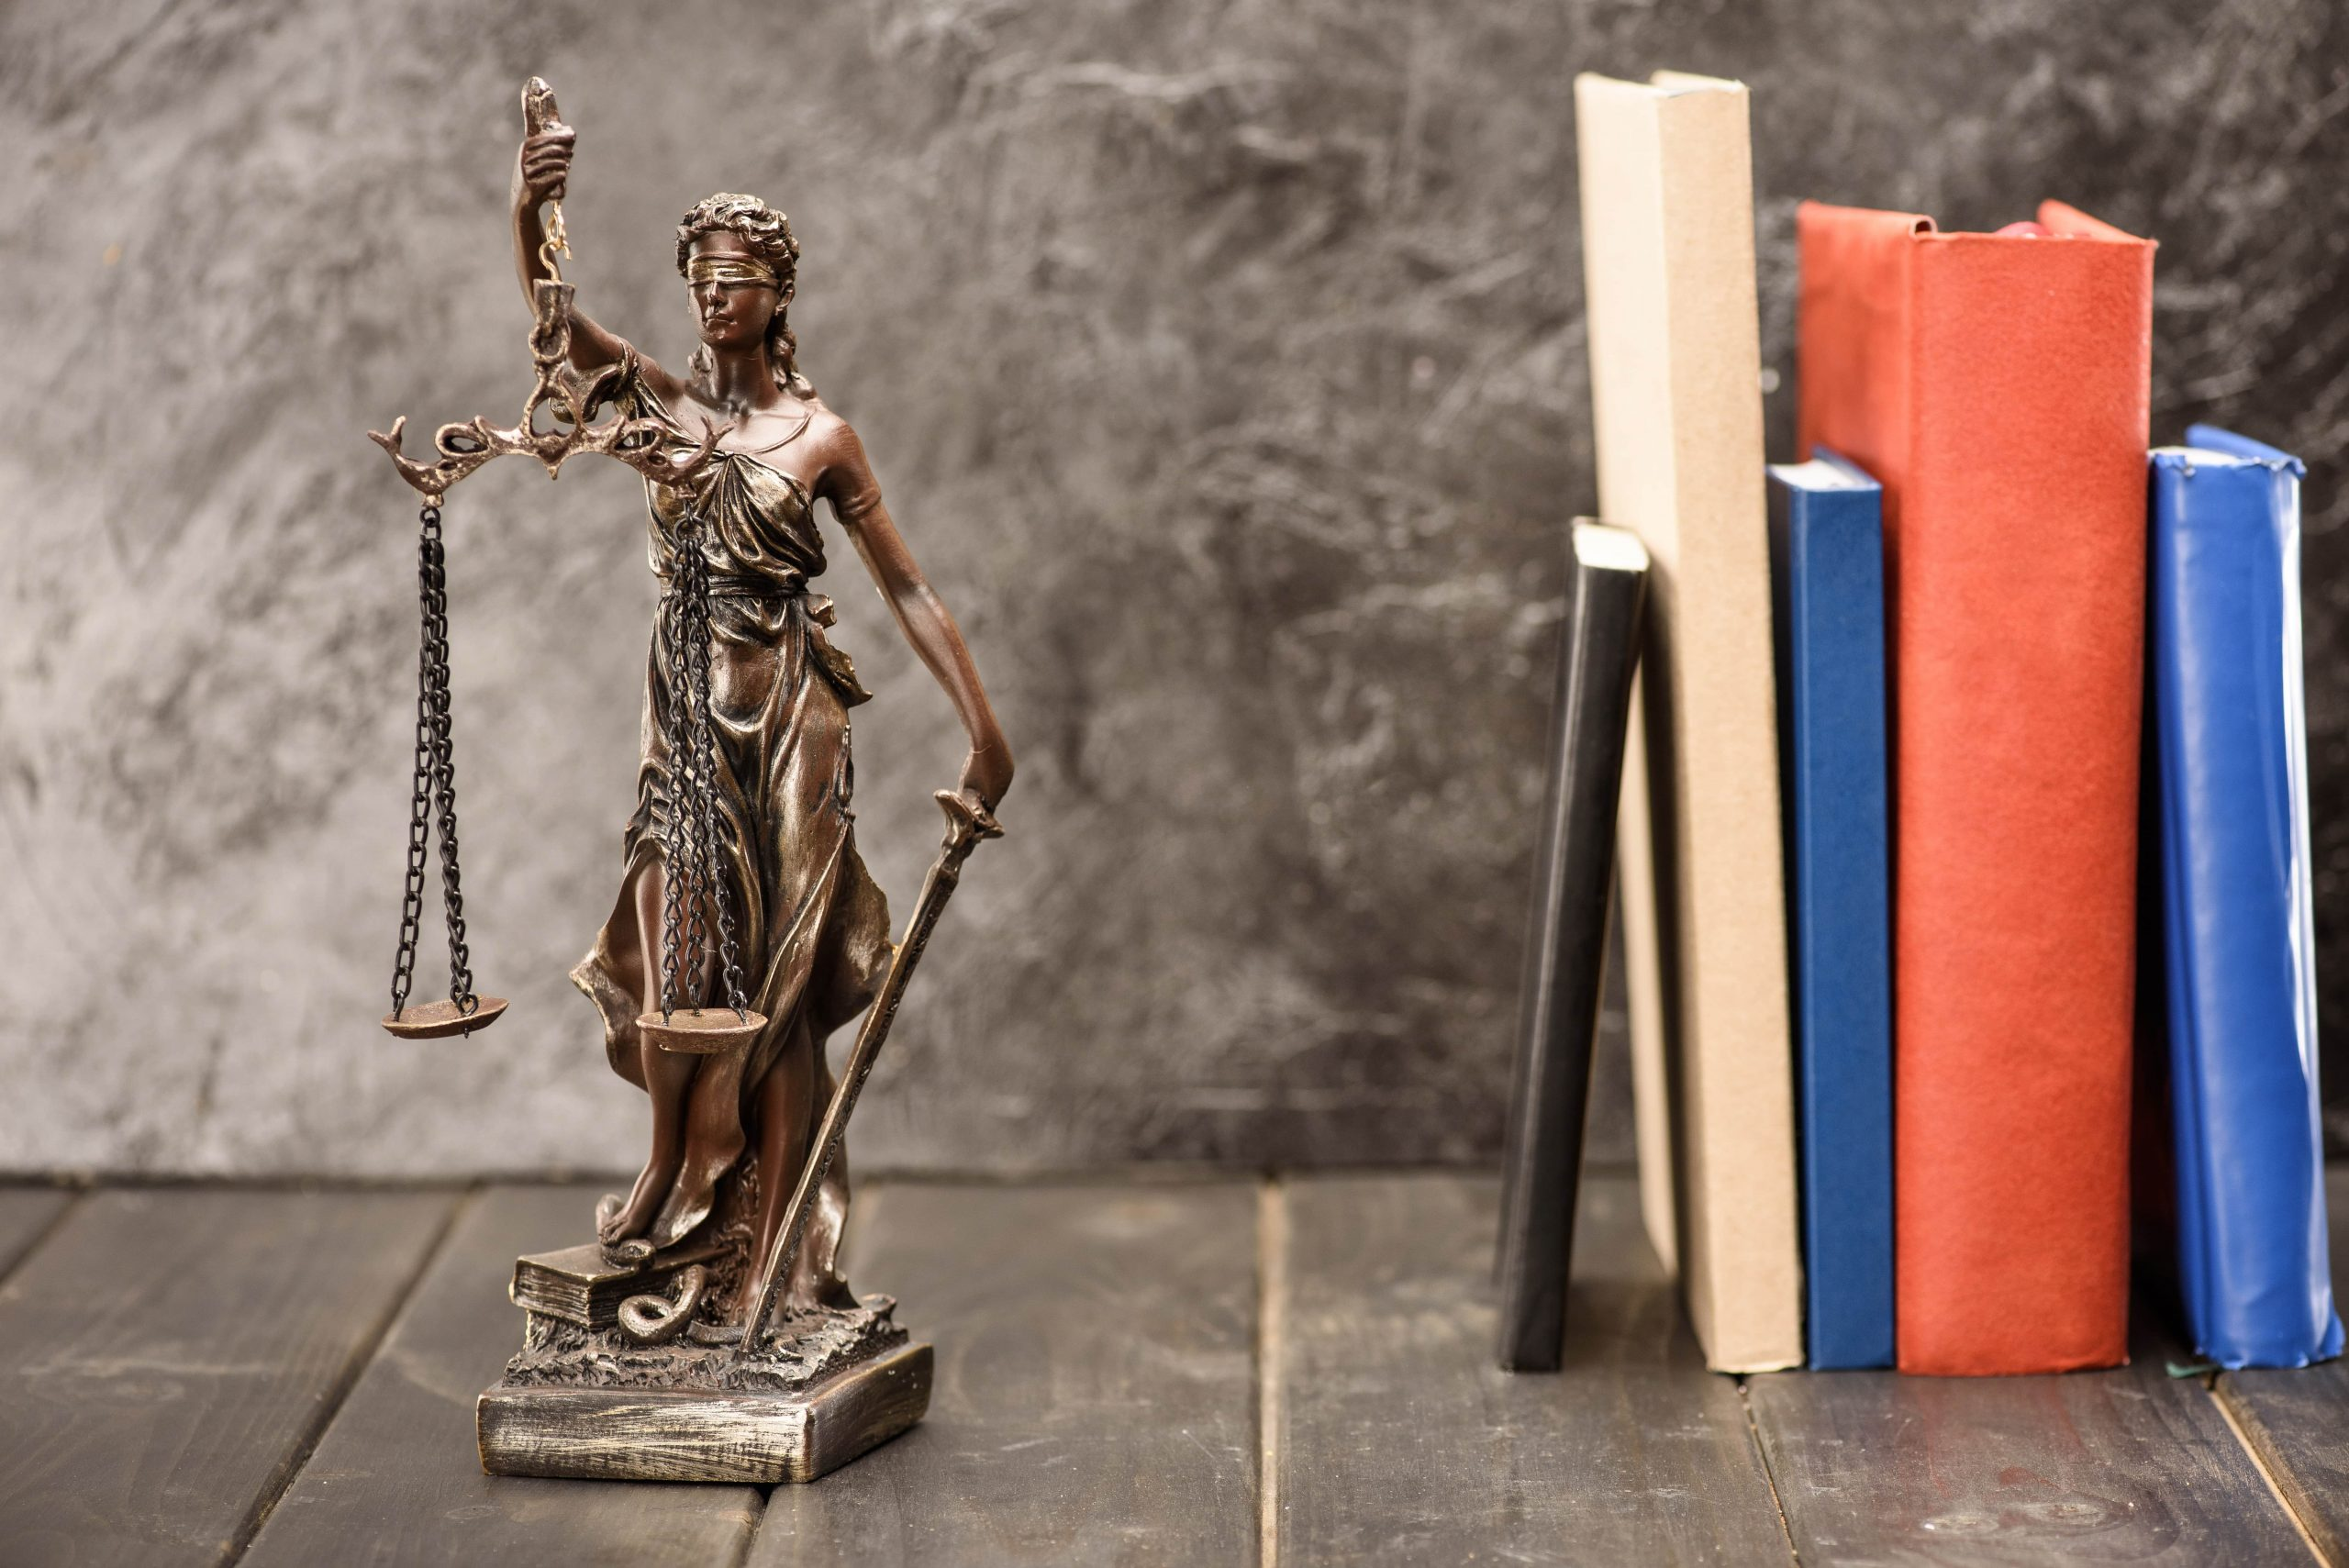 close-up-view-of-antique-statue-of-lady-justice-an-M2YCLMN-min